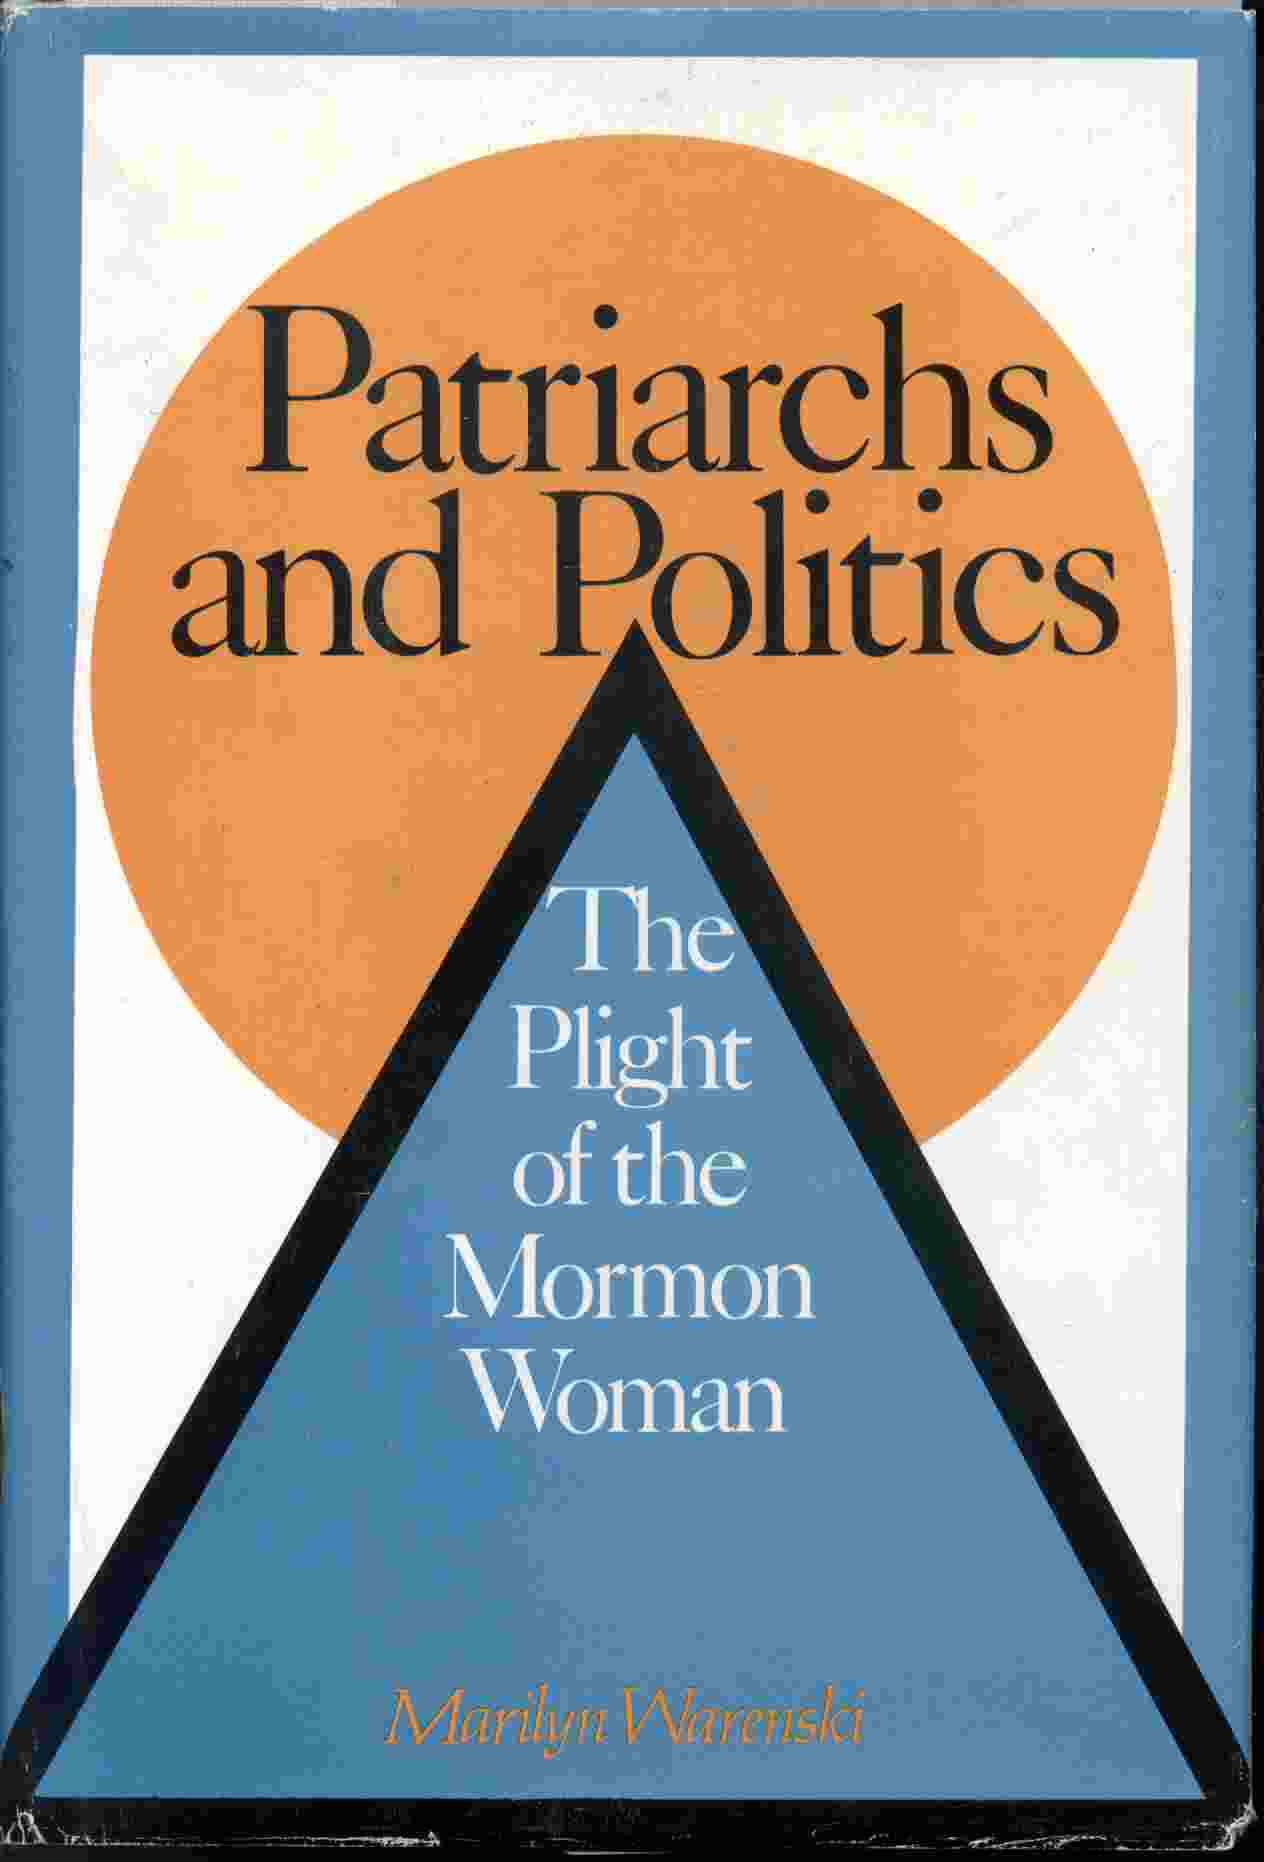 Image for Patriarchs and Politics - the Plight of the Mormon Woman